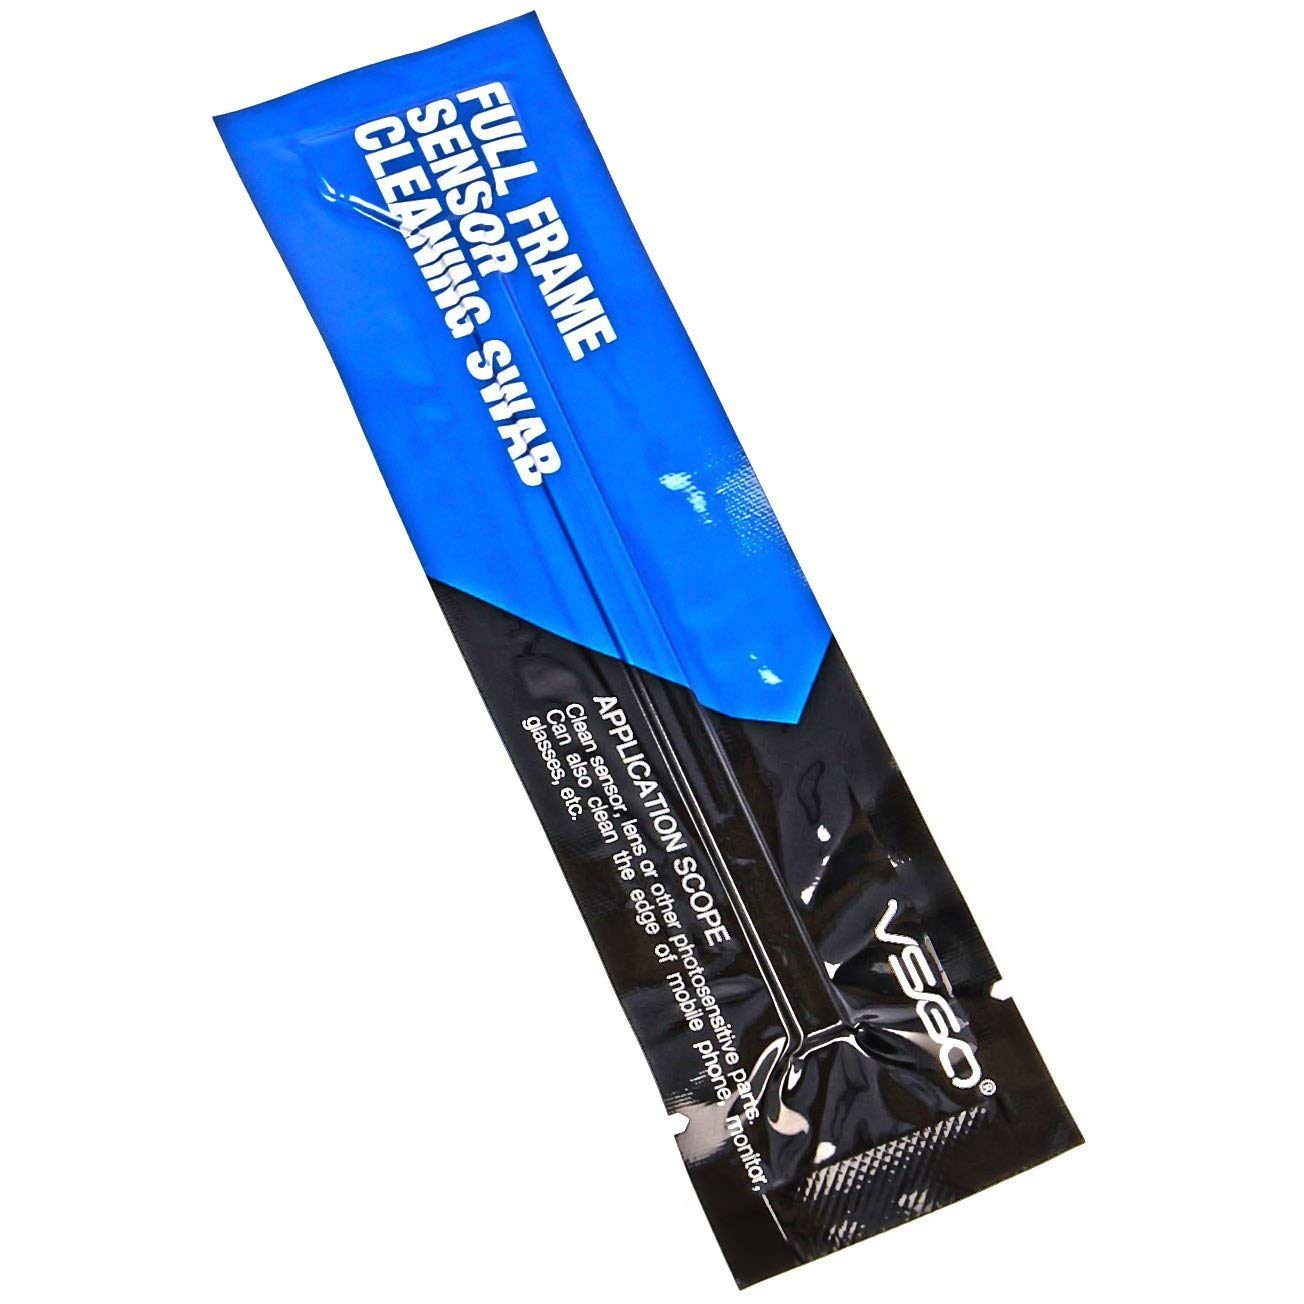 VSGO Full-Frame FFR Sensor Cleaning Swabs (24mm) - 20 Individually Vacuum-Packed Swabs in A Padded Bag by VSGO